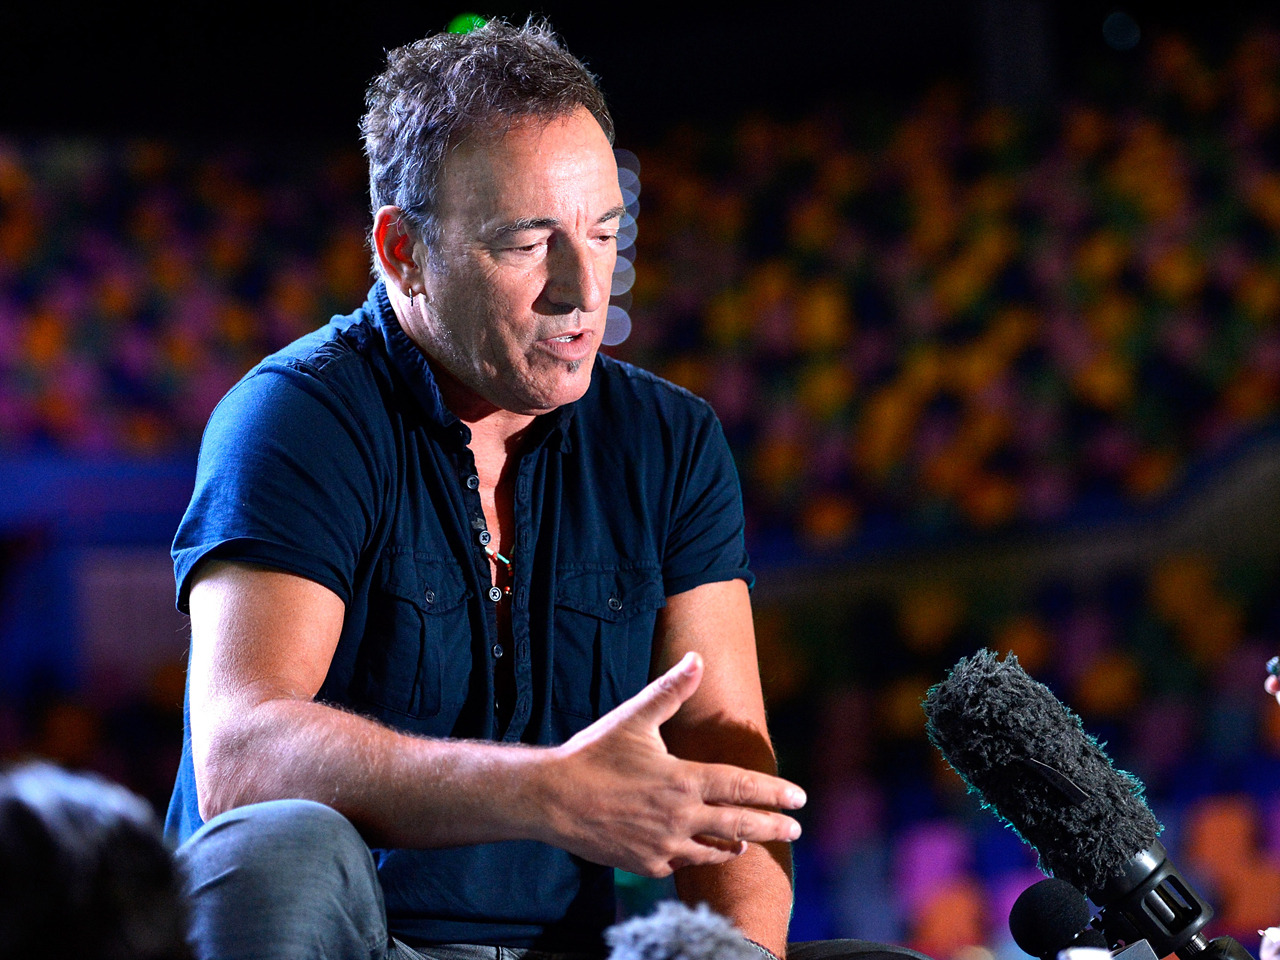 Bruce Springsteen - Photo 23 - Pictures - CBS News Bruce Springsteen